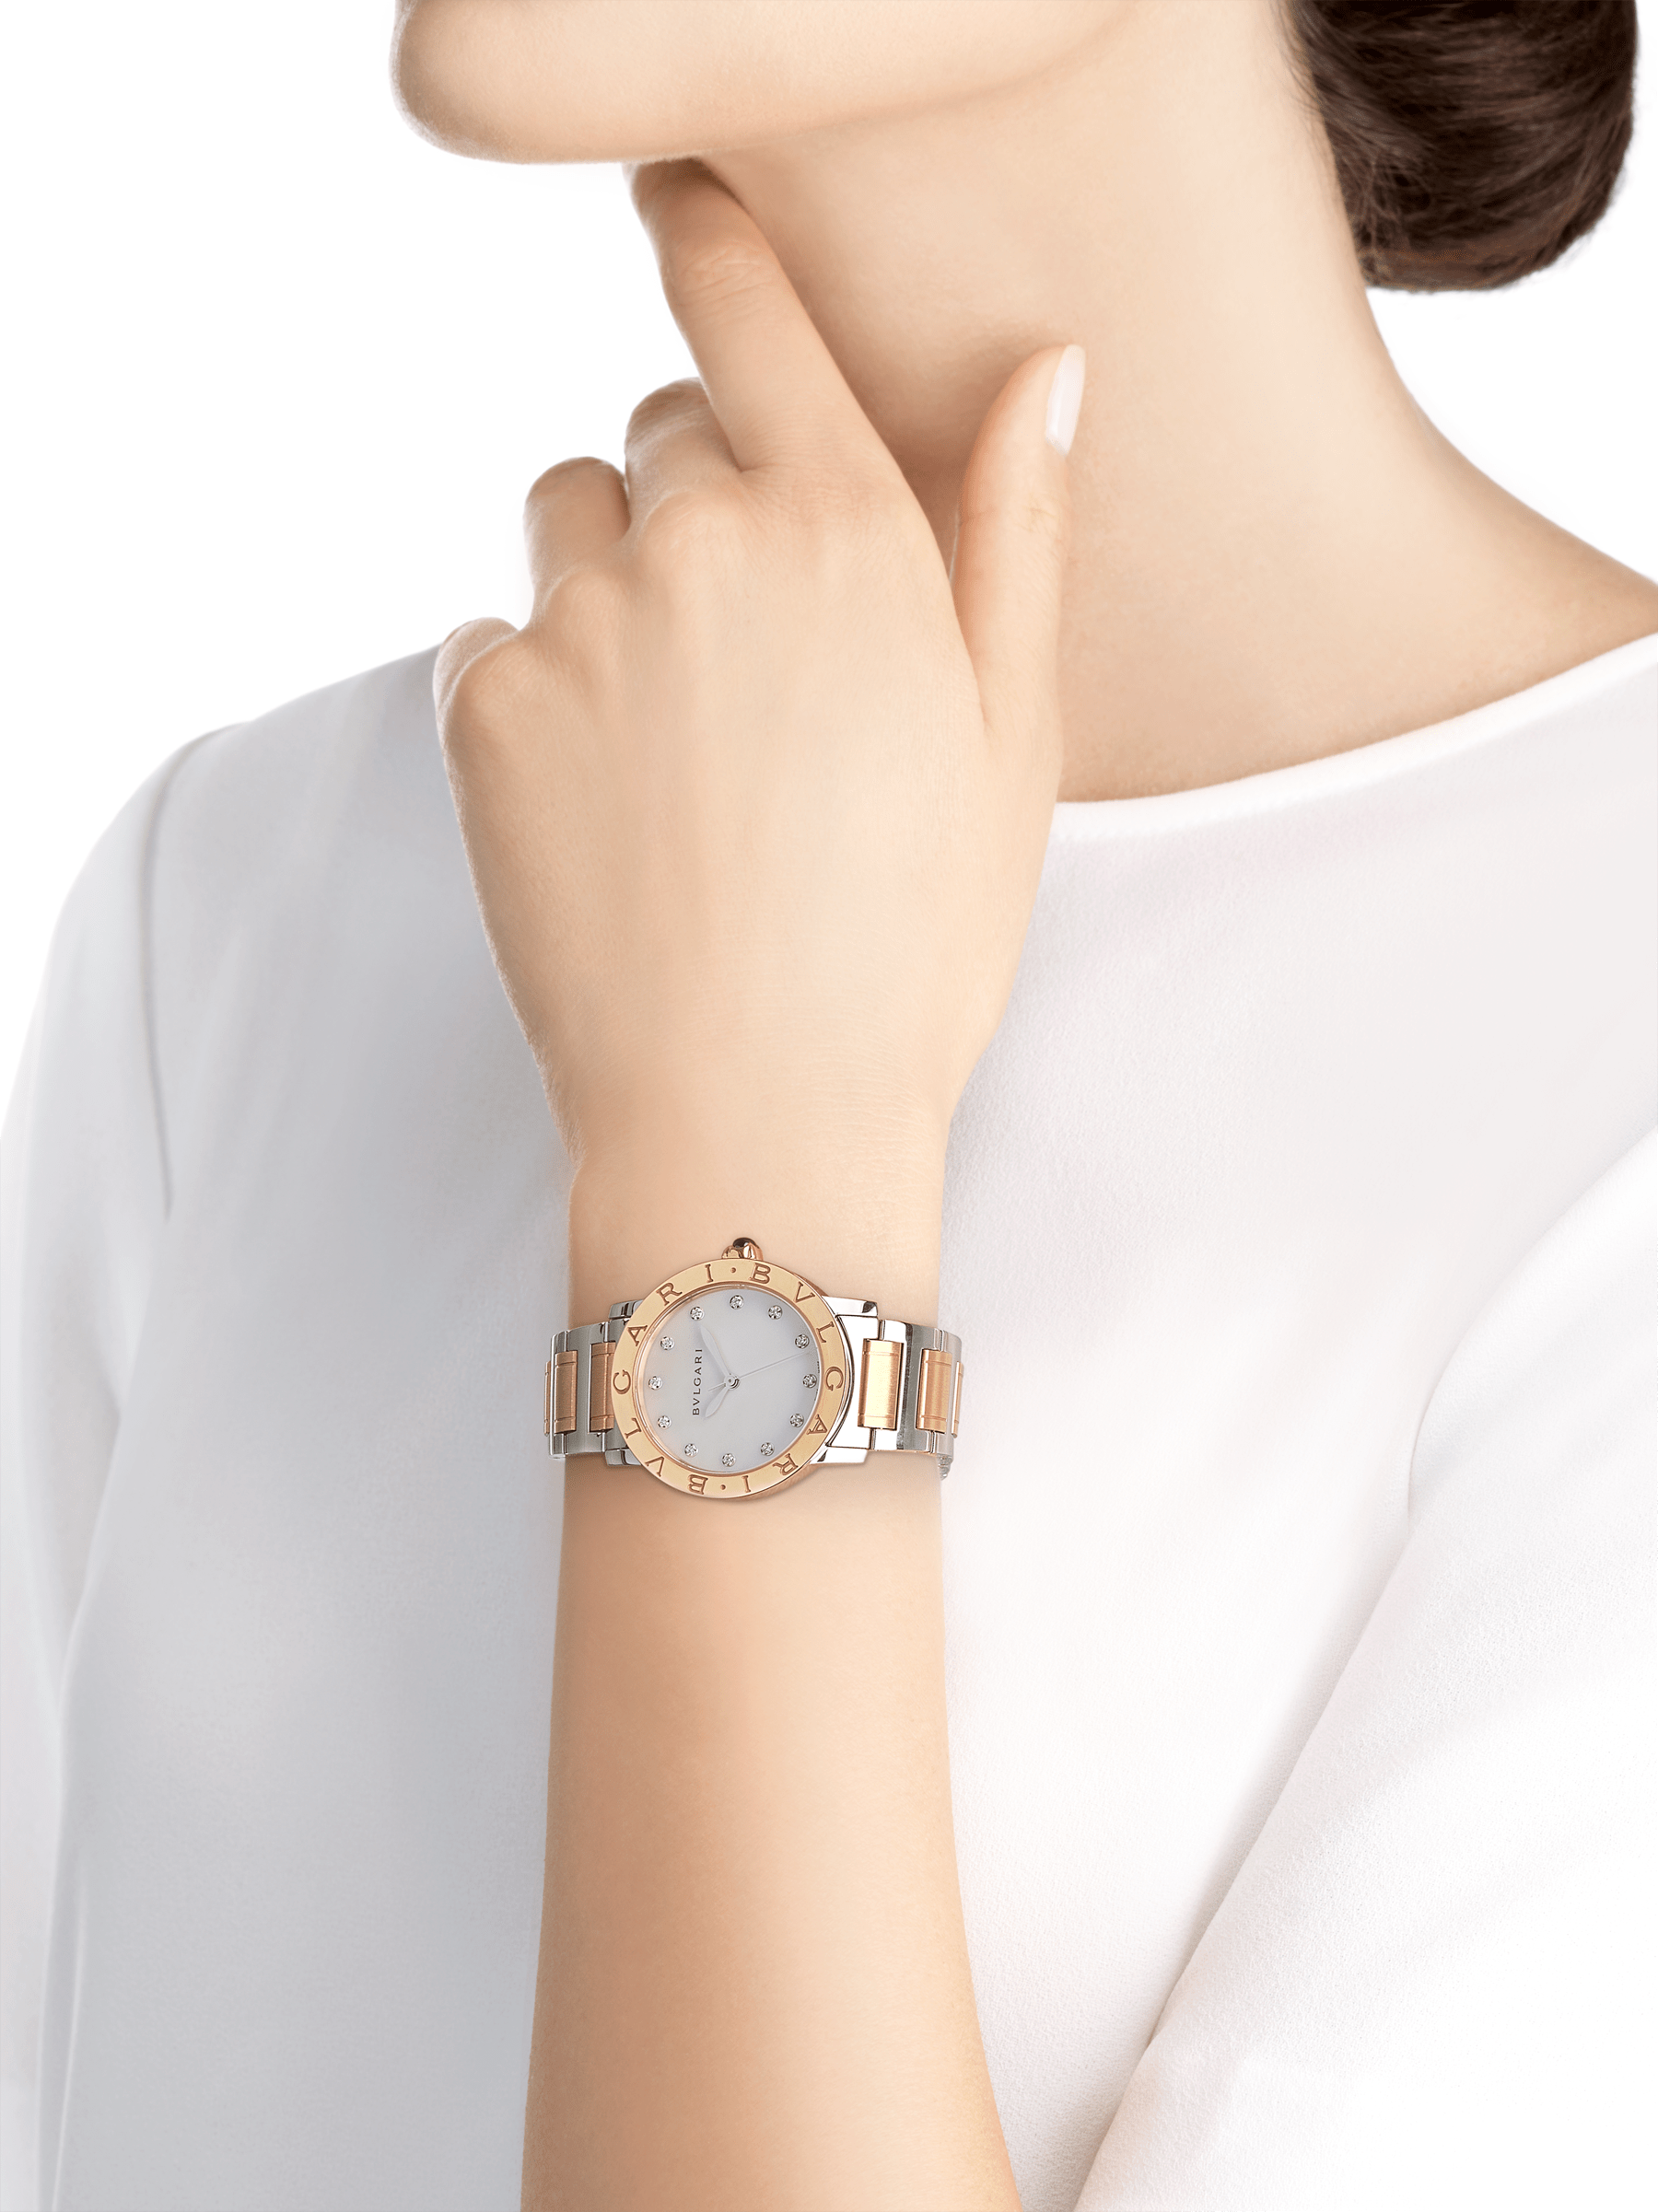 BVLGARI BVLGARI watch in 18 kt rose gold and stainless steel case and bracelet, with white mother-of-pearl dial and diamond indexes. Medium model 101891 image 4